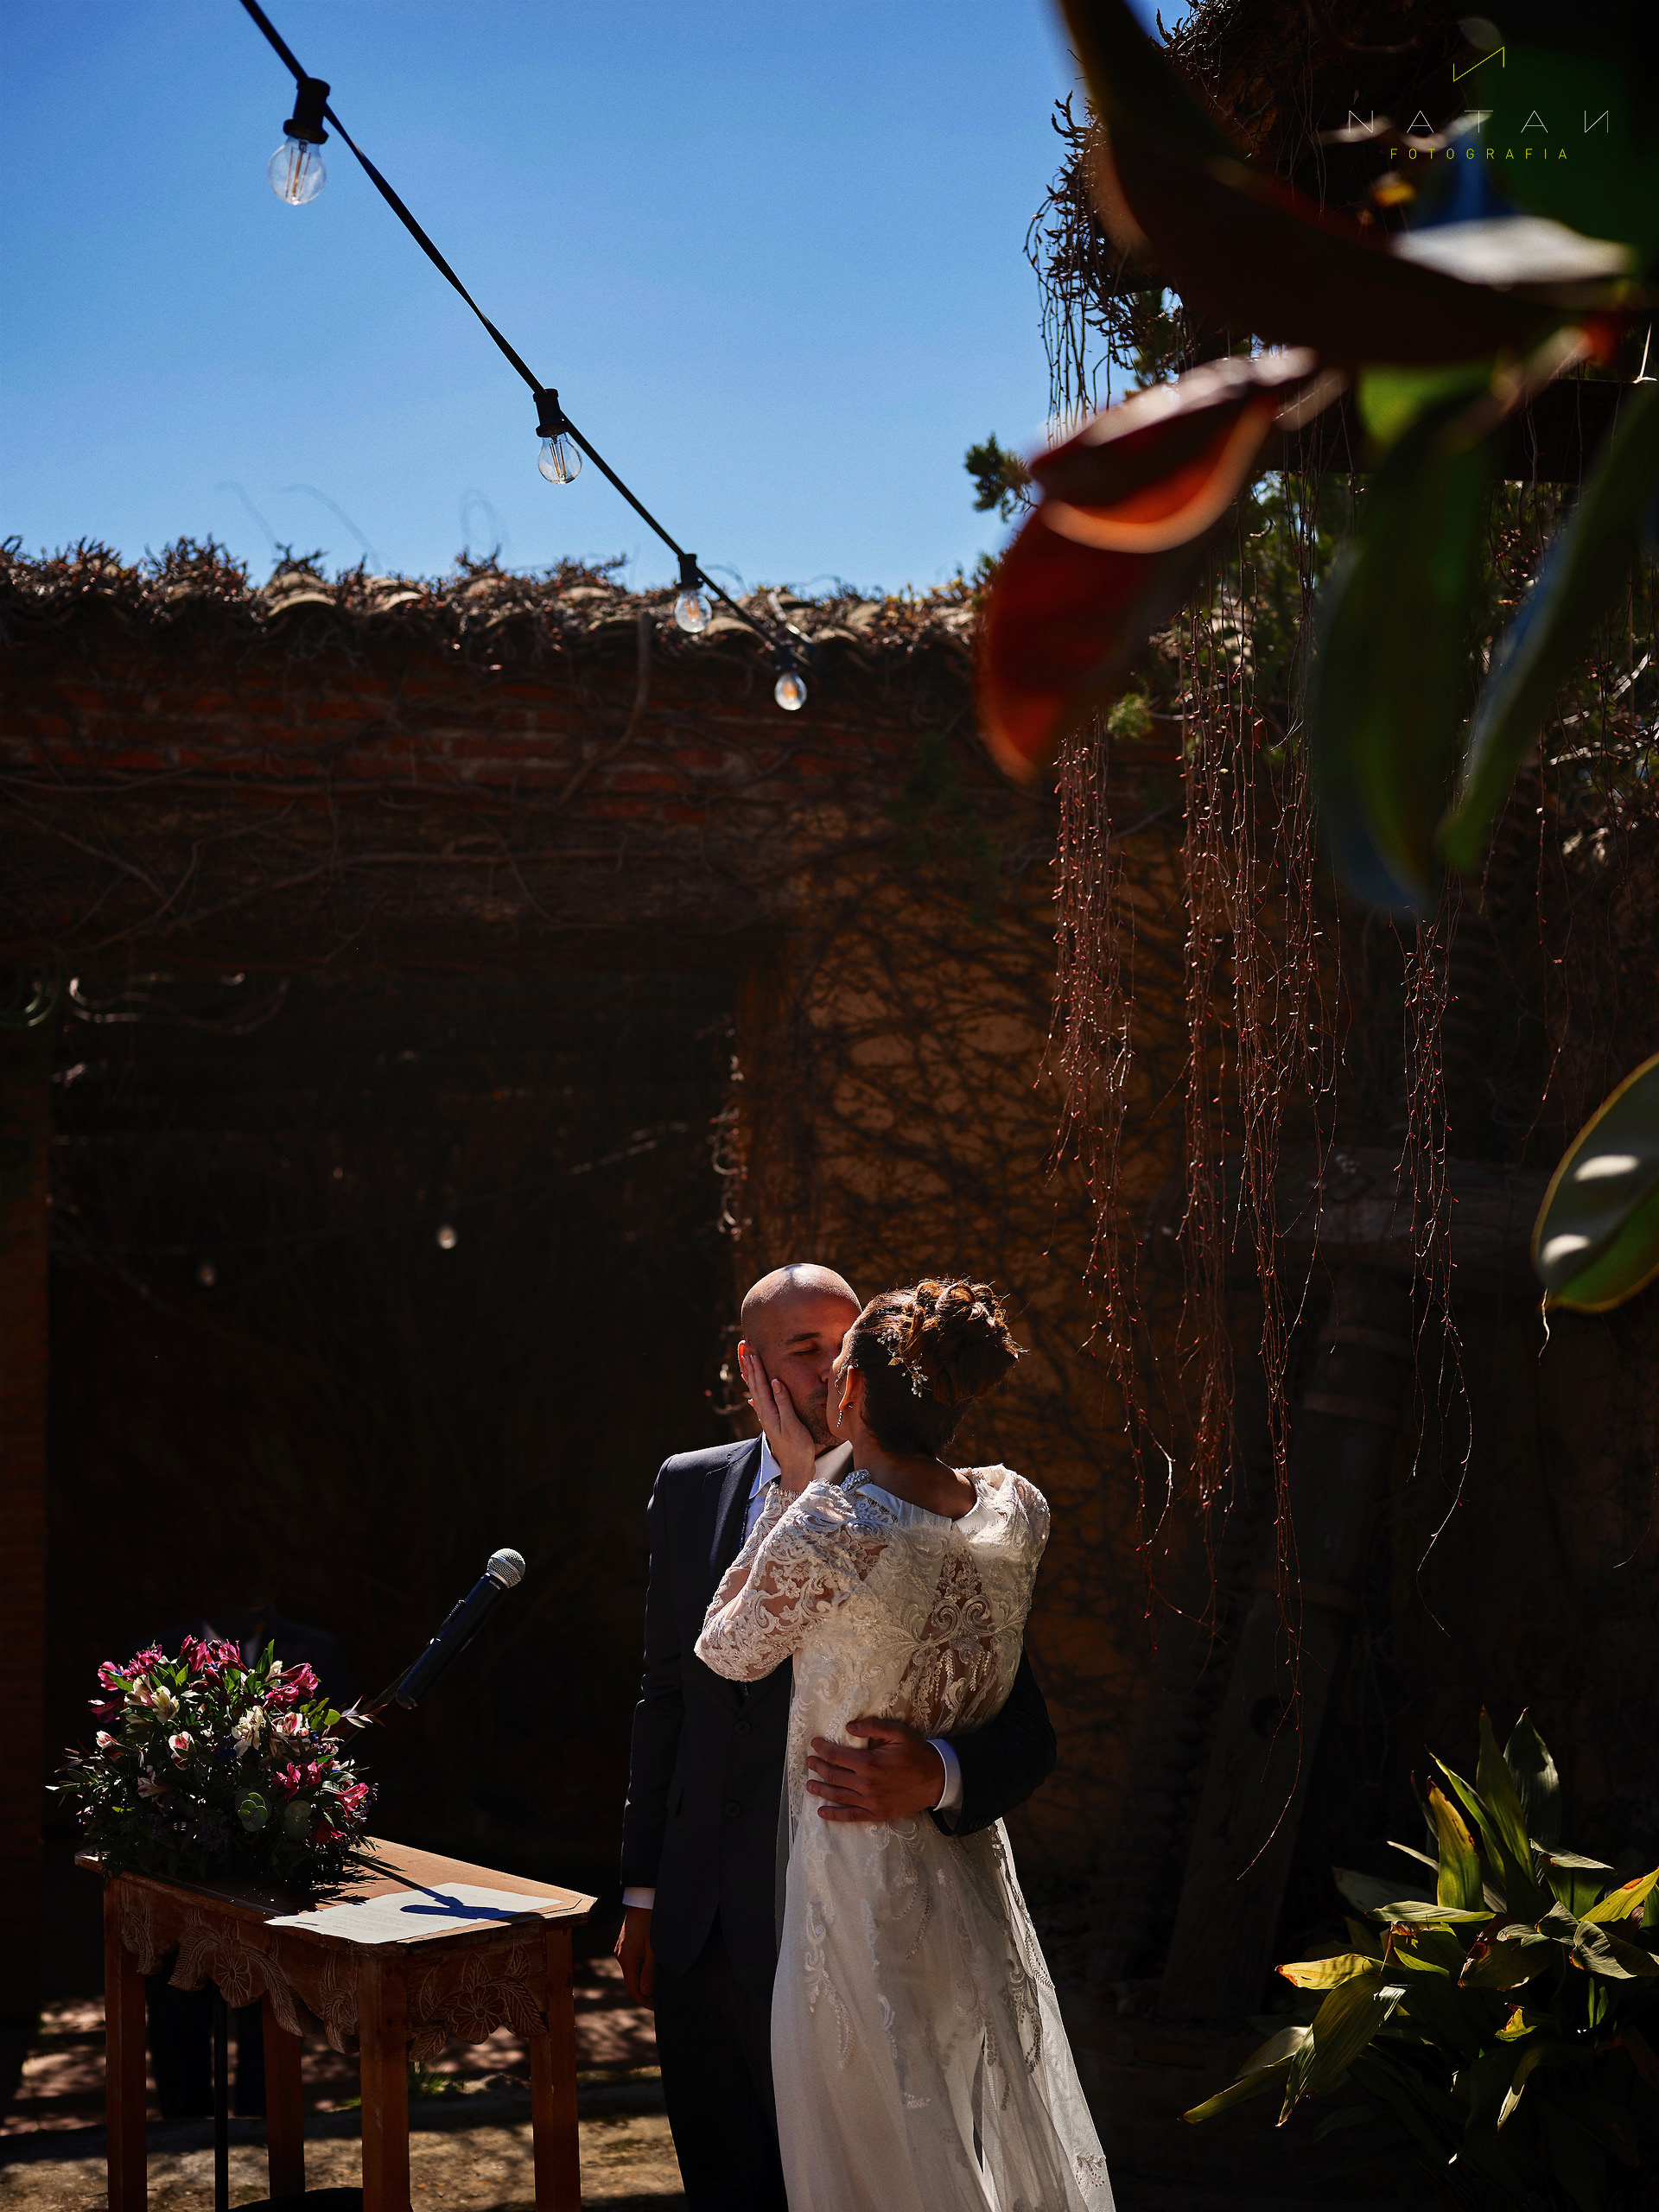 Wedding Photographer in Barcelona - Natan - First Kiss during ceremony